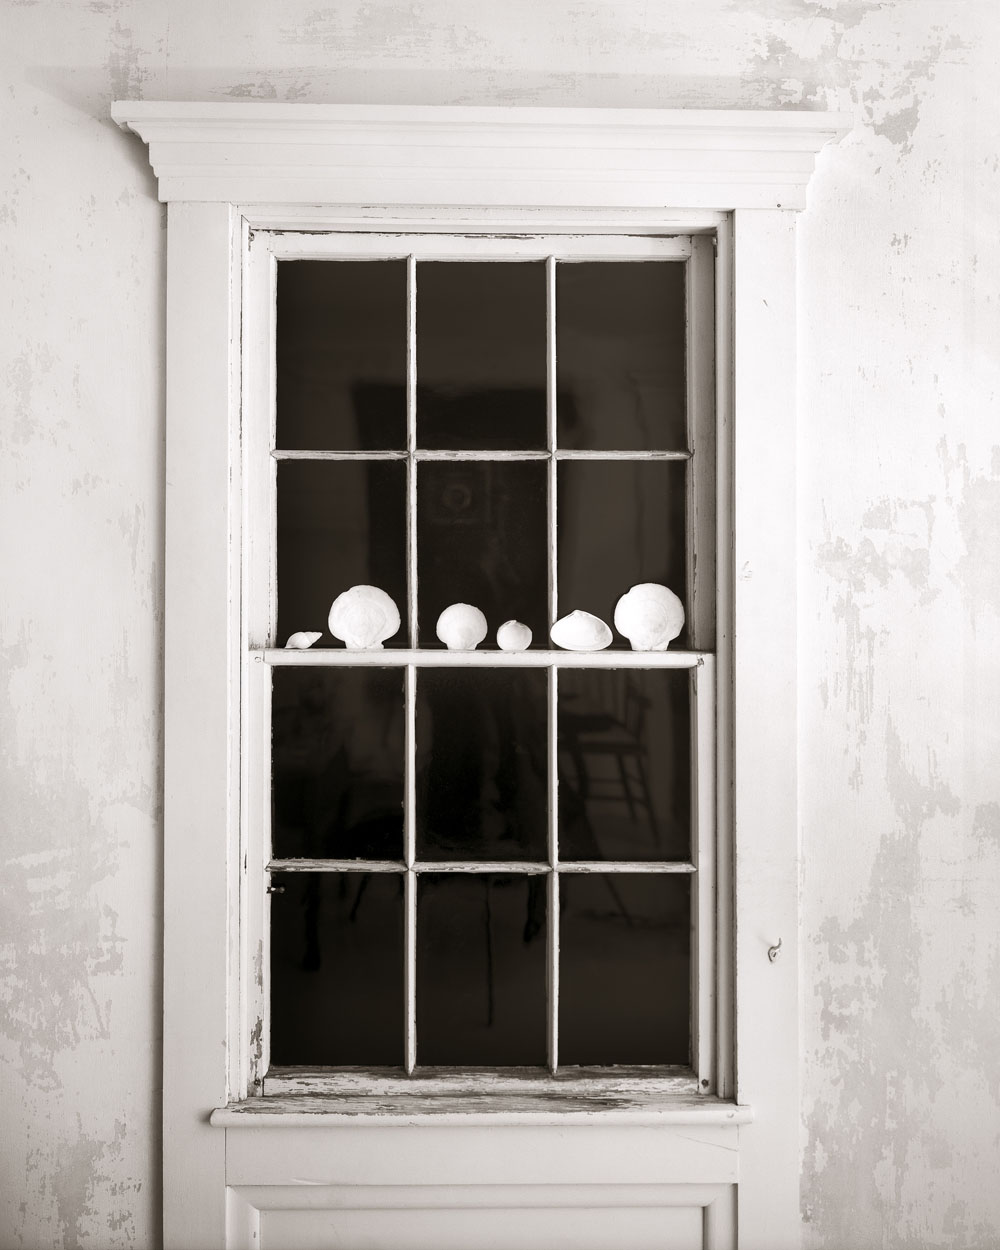 Linda Connor, Window with Shells at Night, 2006